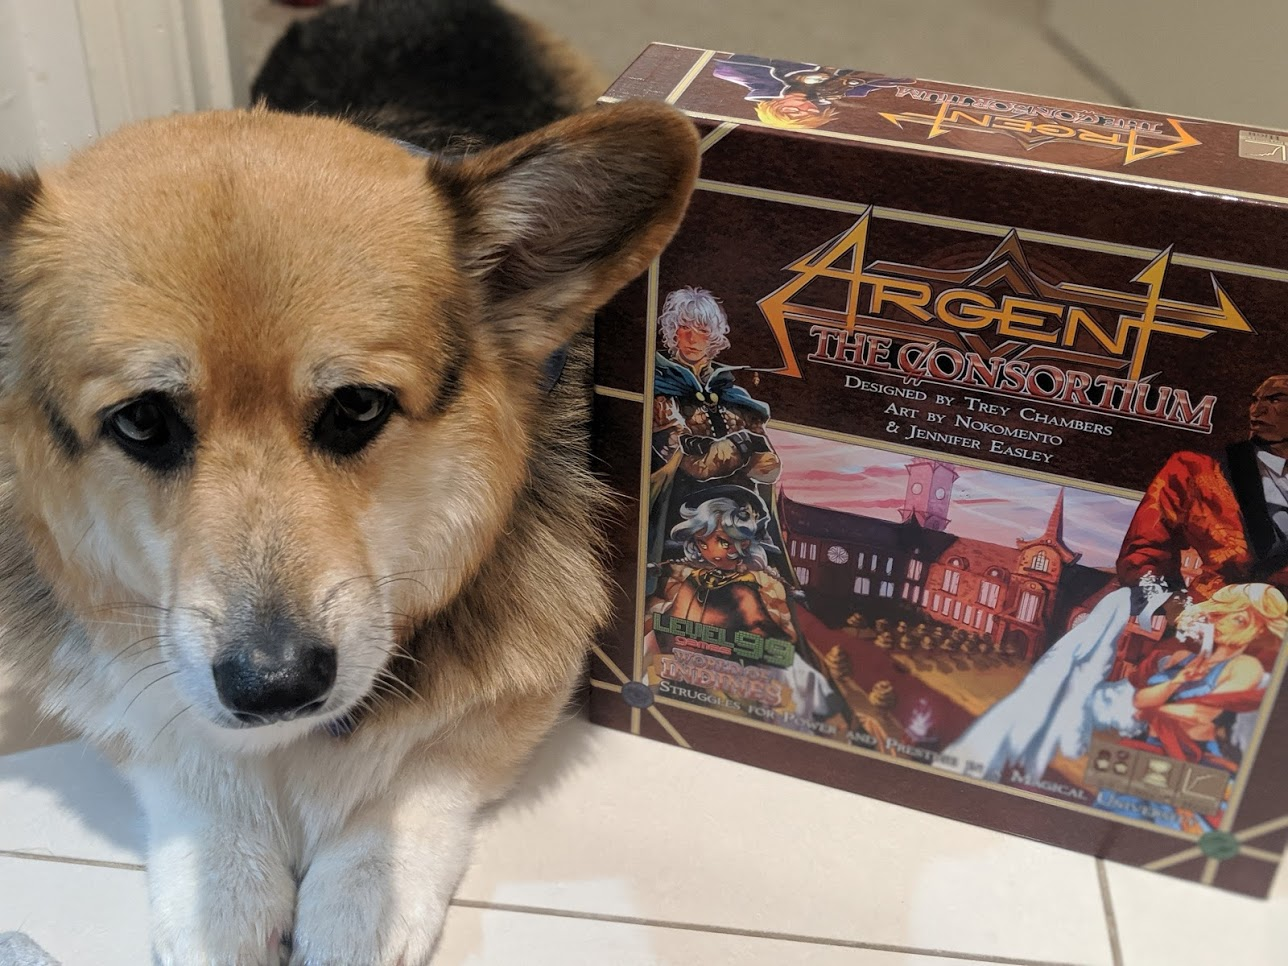 Cute ass corgi laying next to Argent the Consortium box.